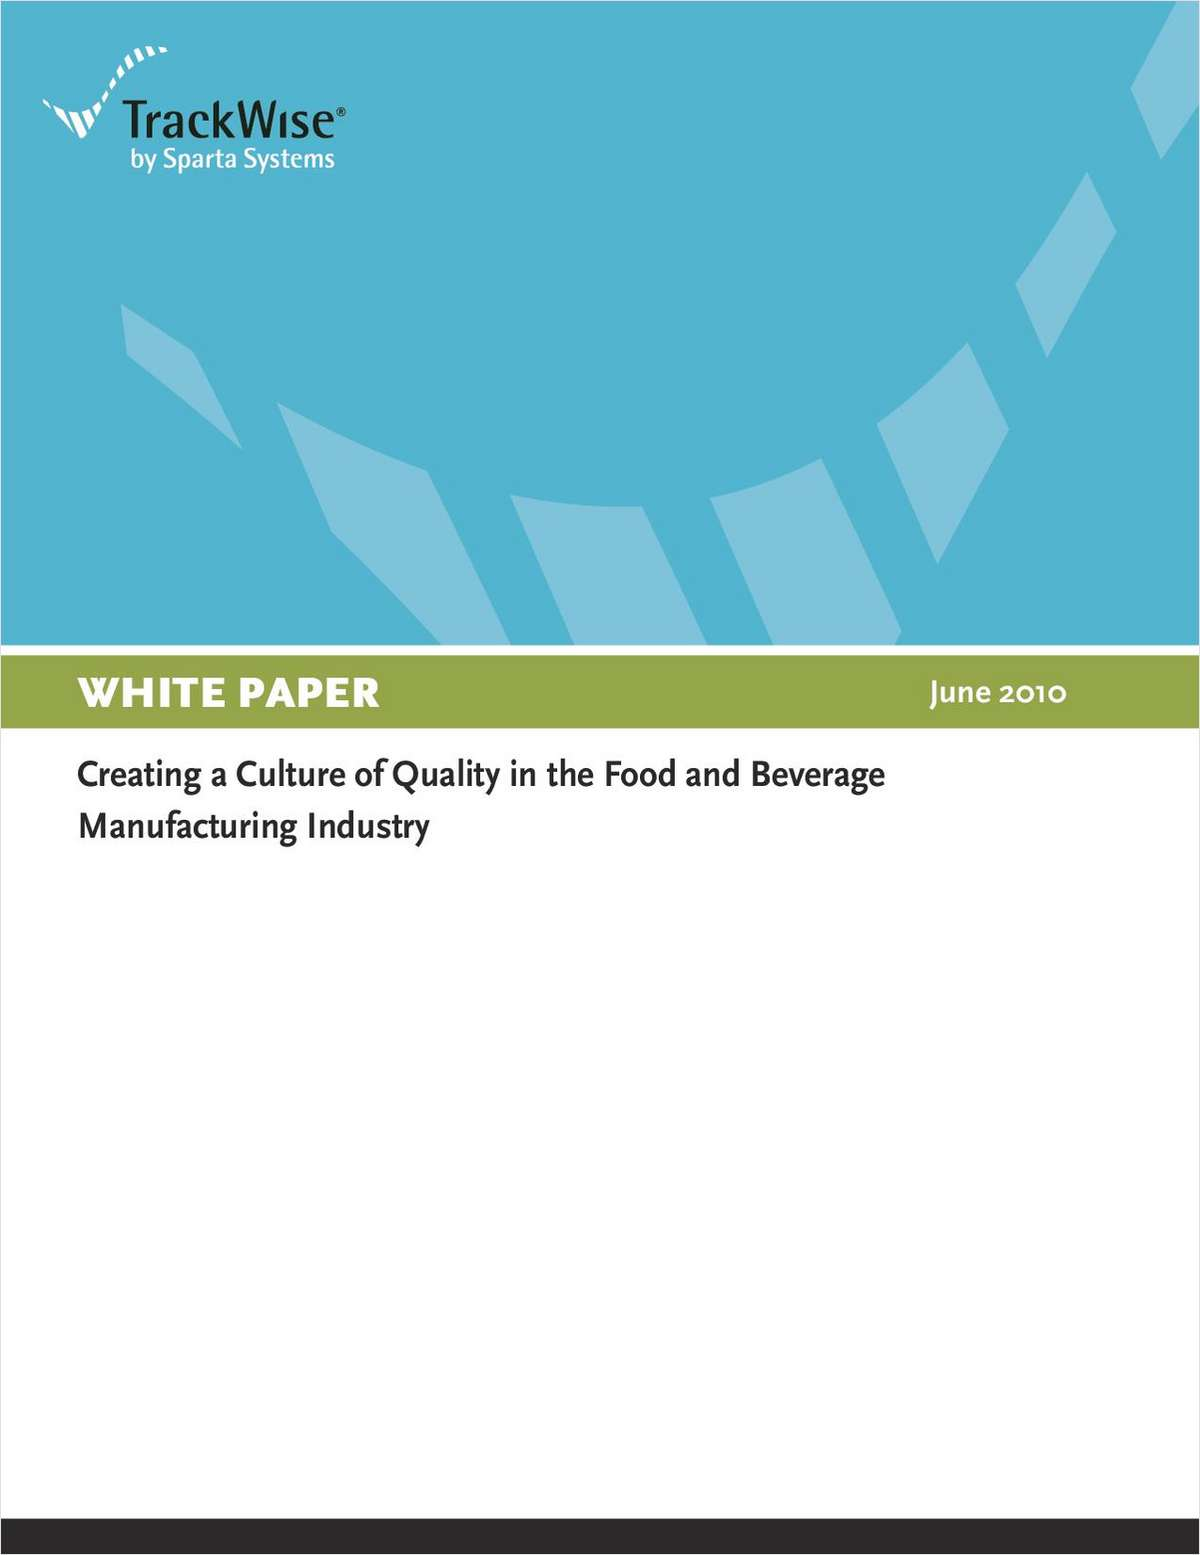 Creating a Culture of Quality in the Food and Beverage Manufacturing Industry